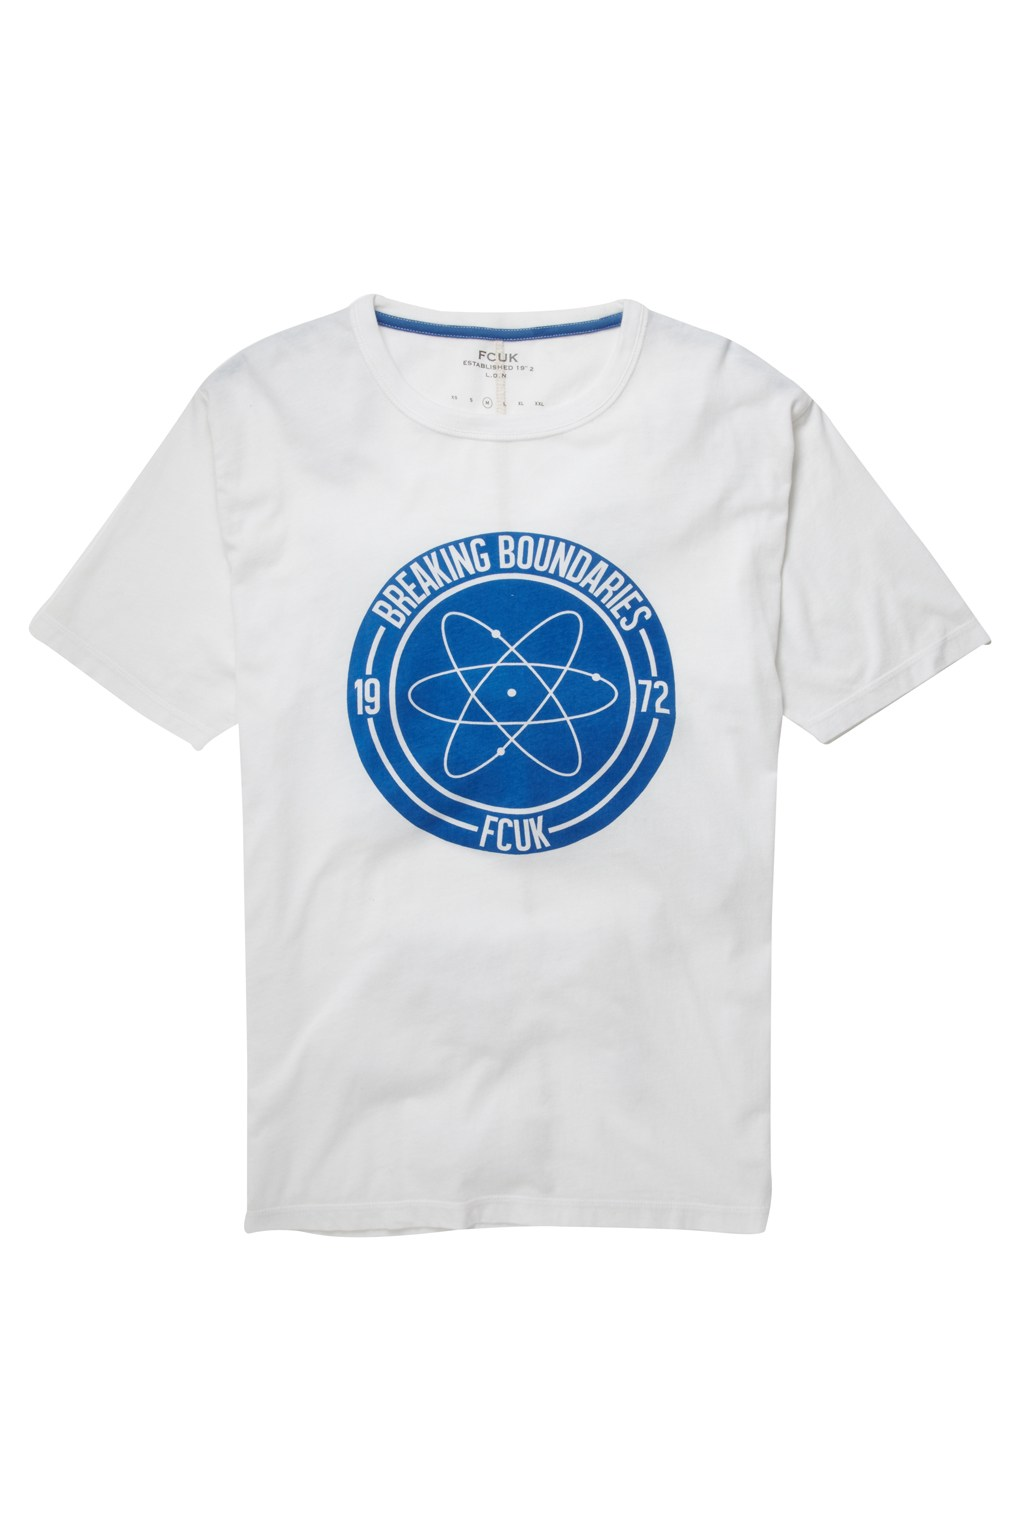 French Connection Breaking Boundaries T-Shirt product image